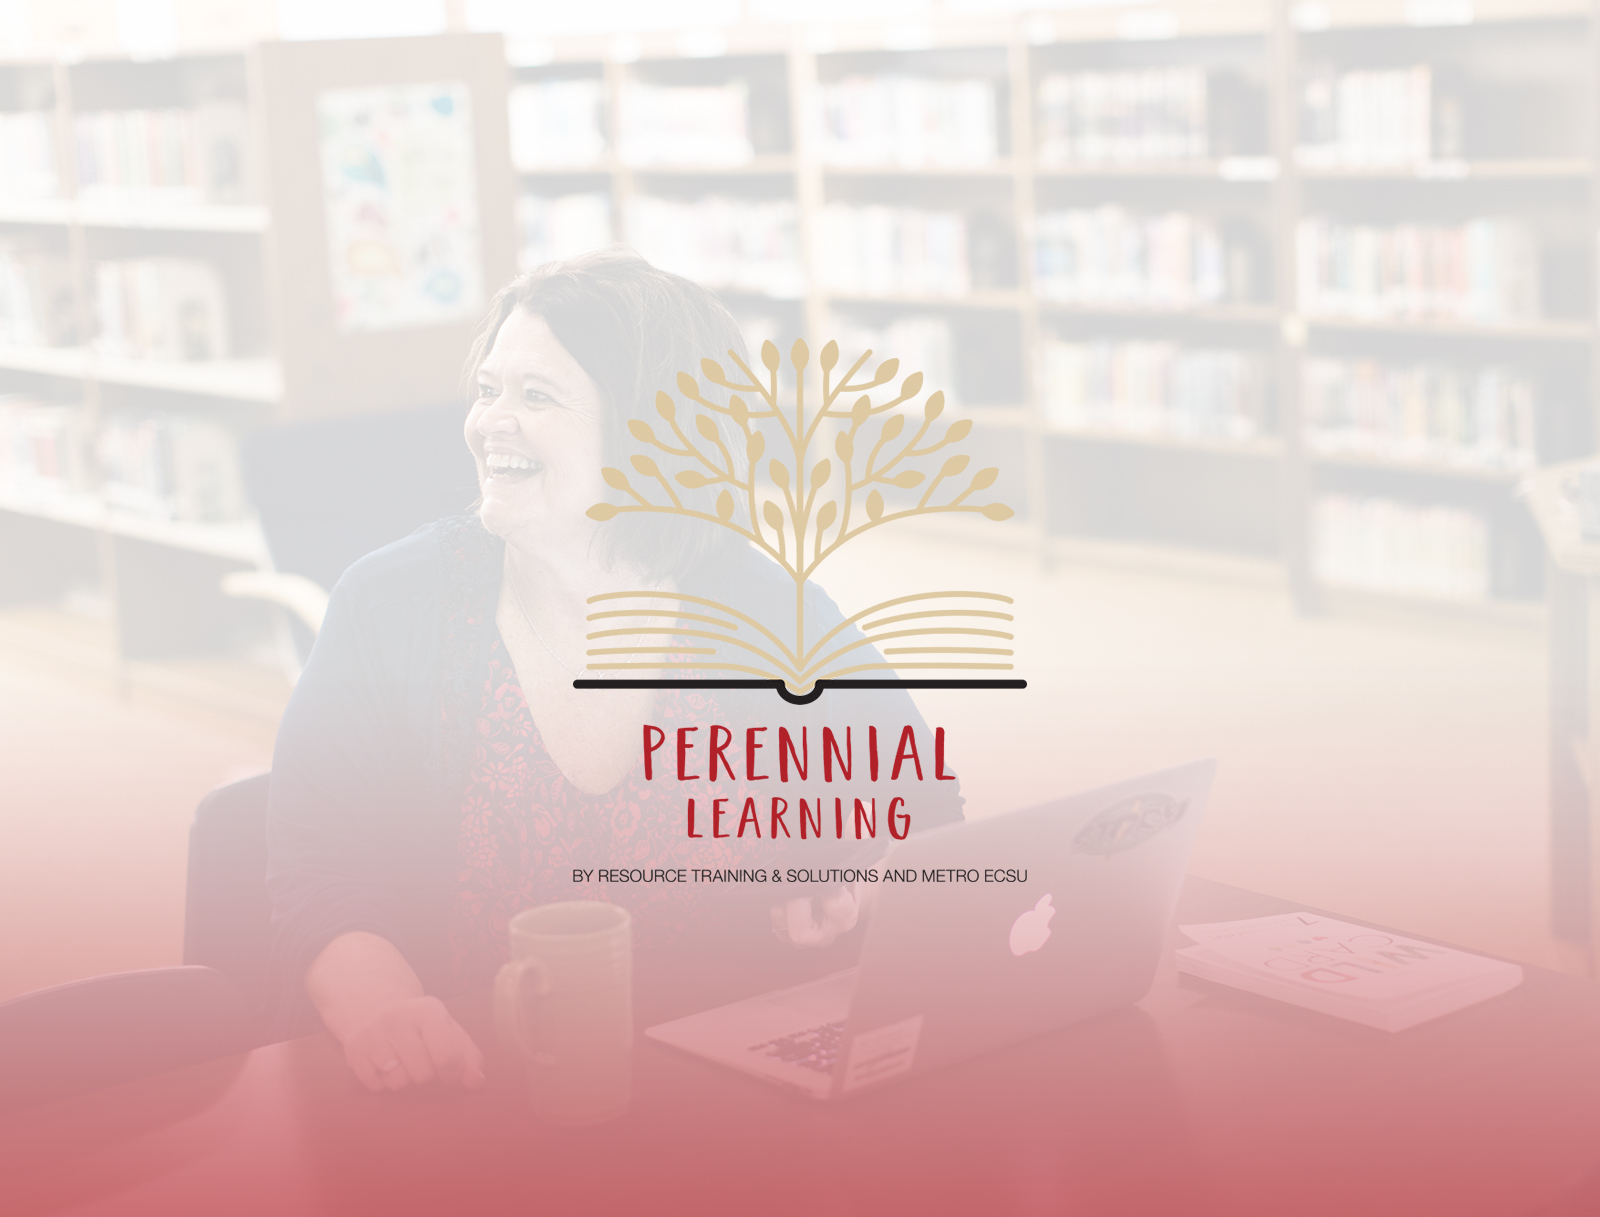 Perennial Learning | Programs & Services